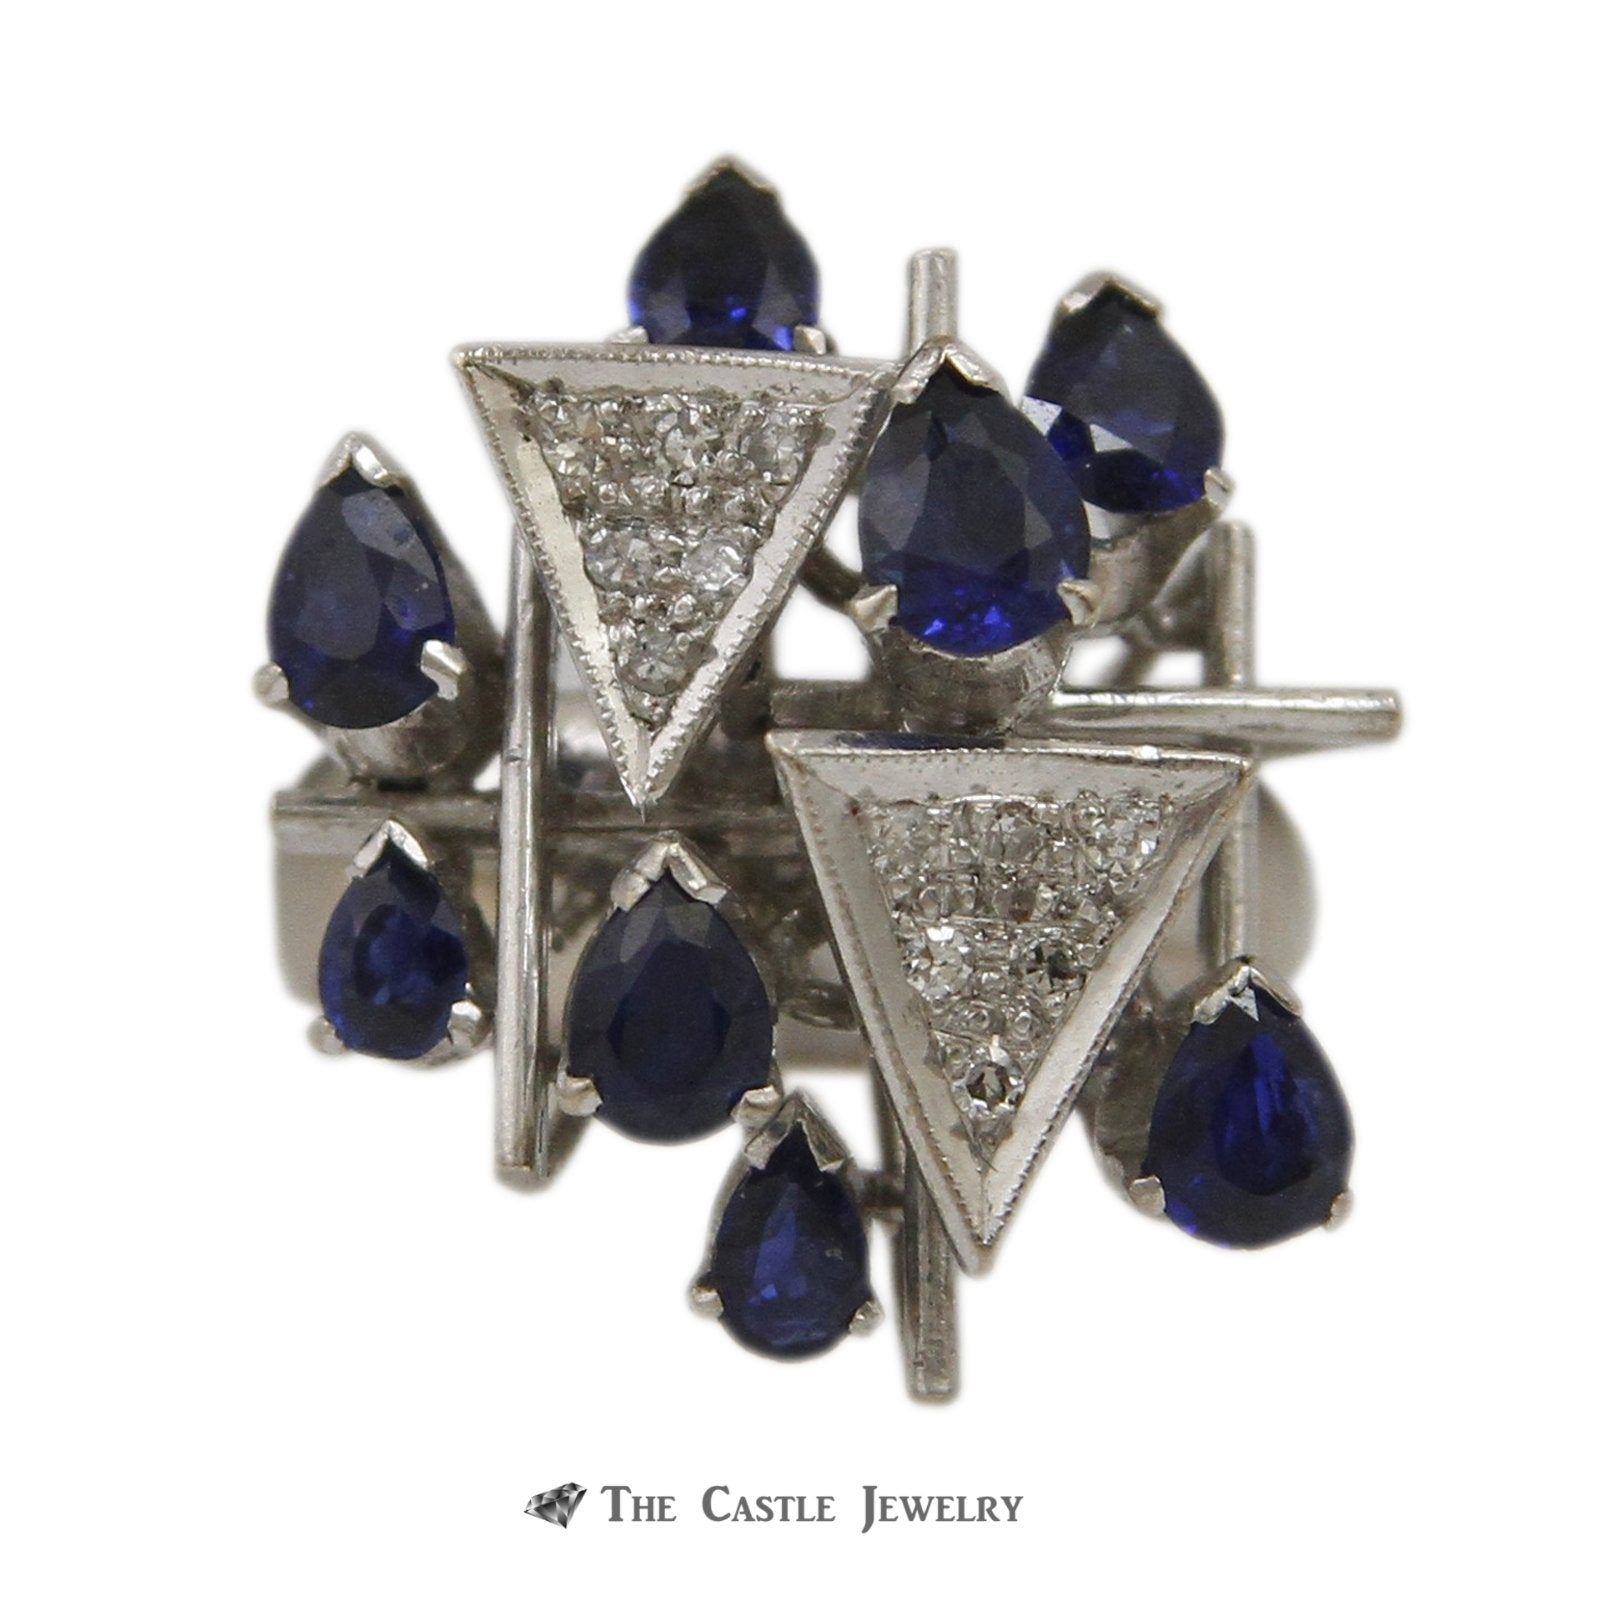 Art Deco Pave Diamond Clusters Accented with Pear Shaped Sapphires in White Gold